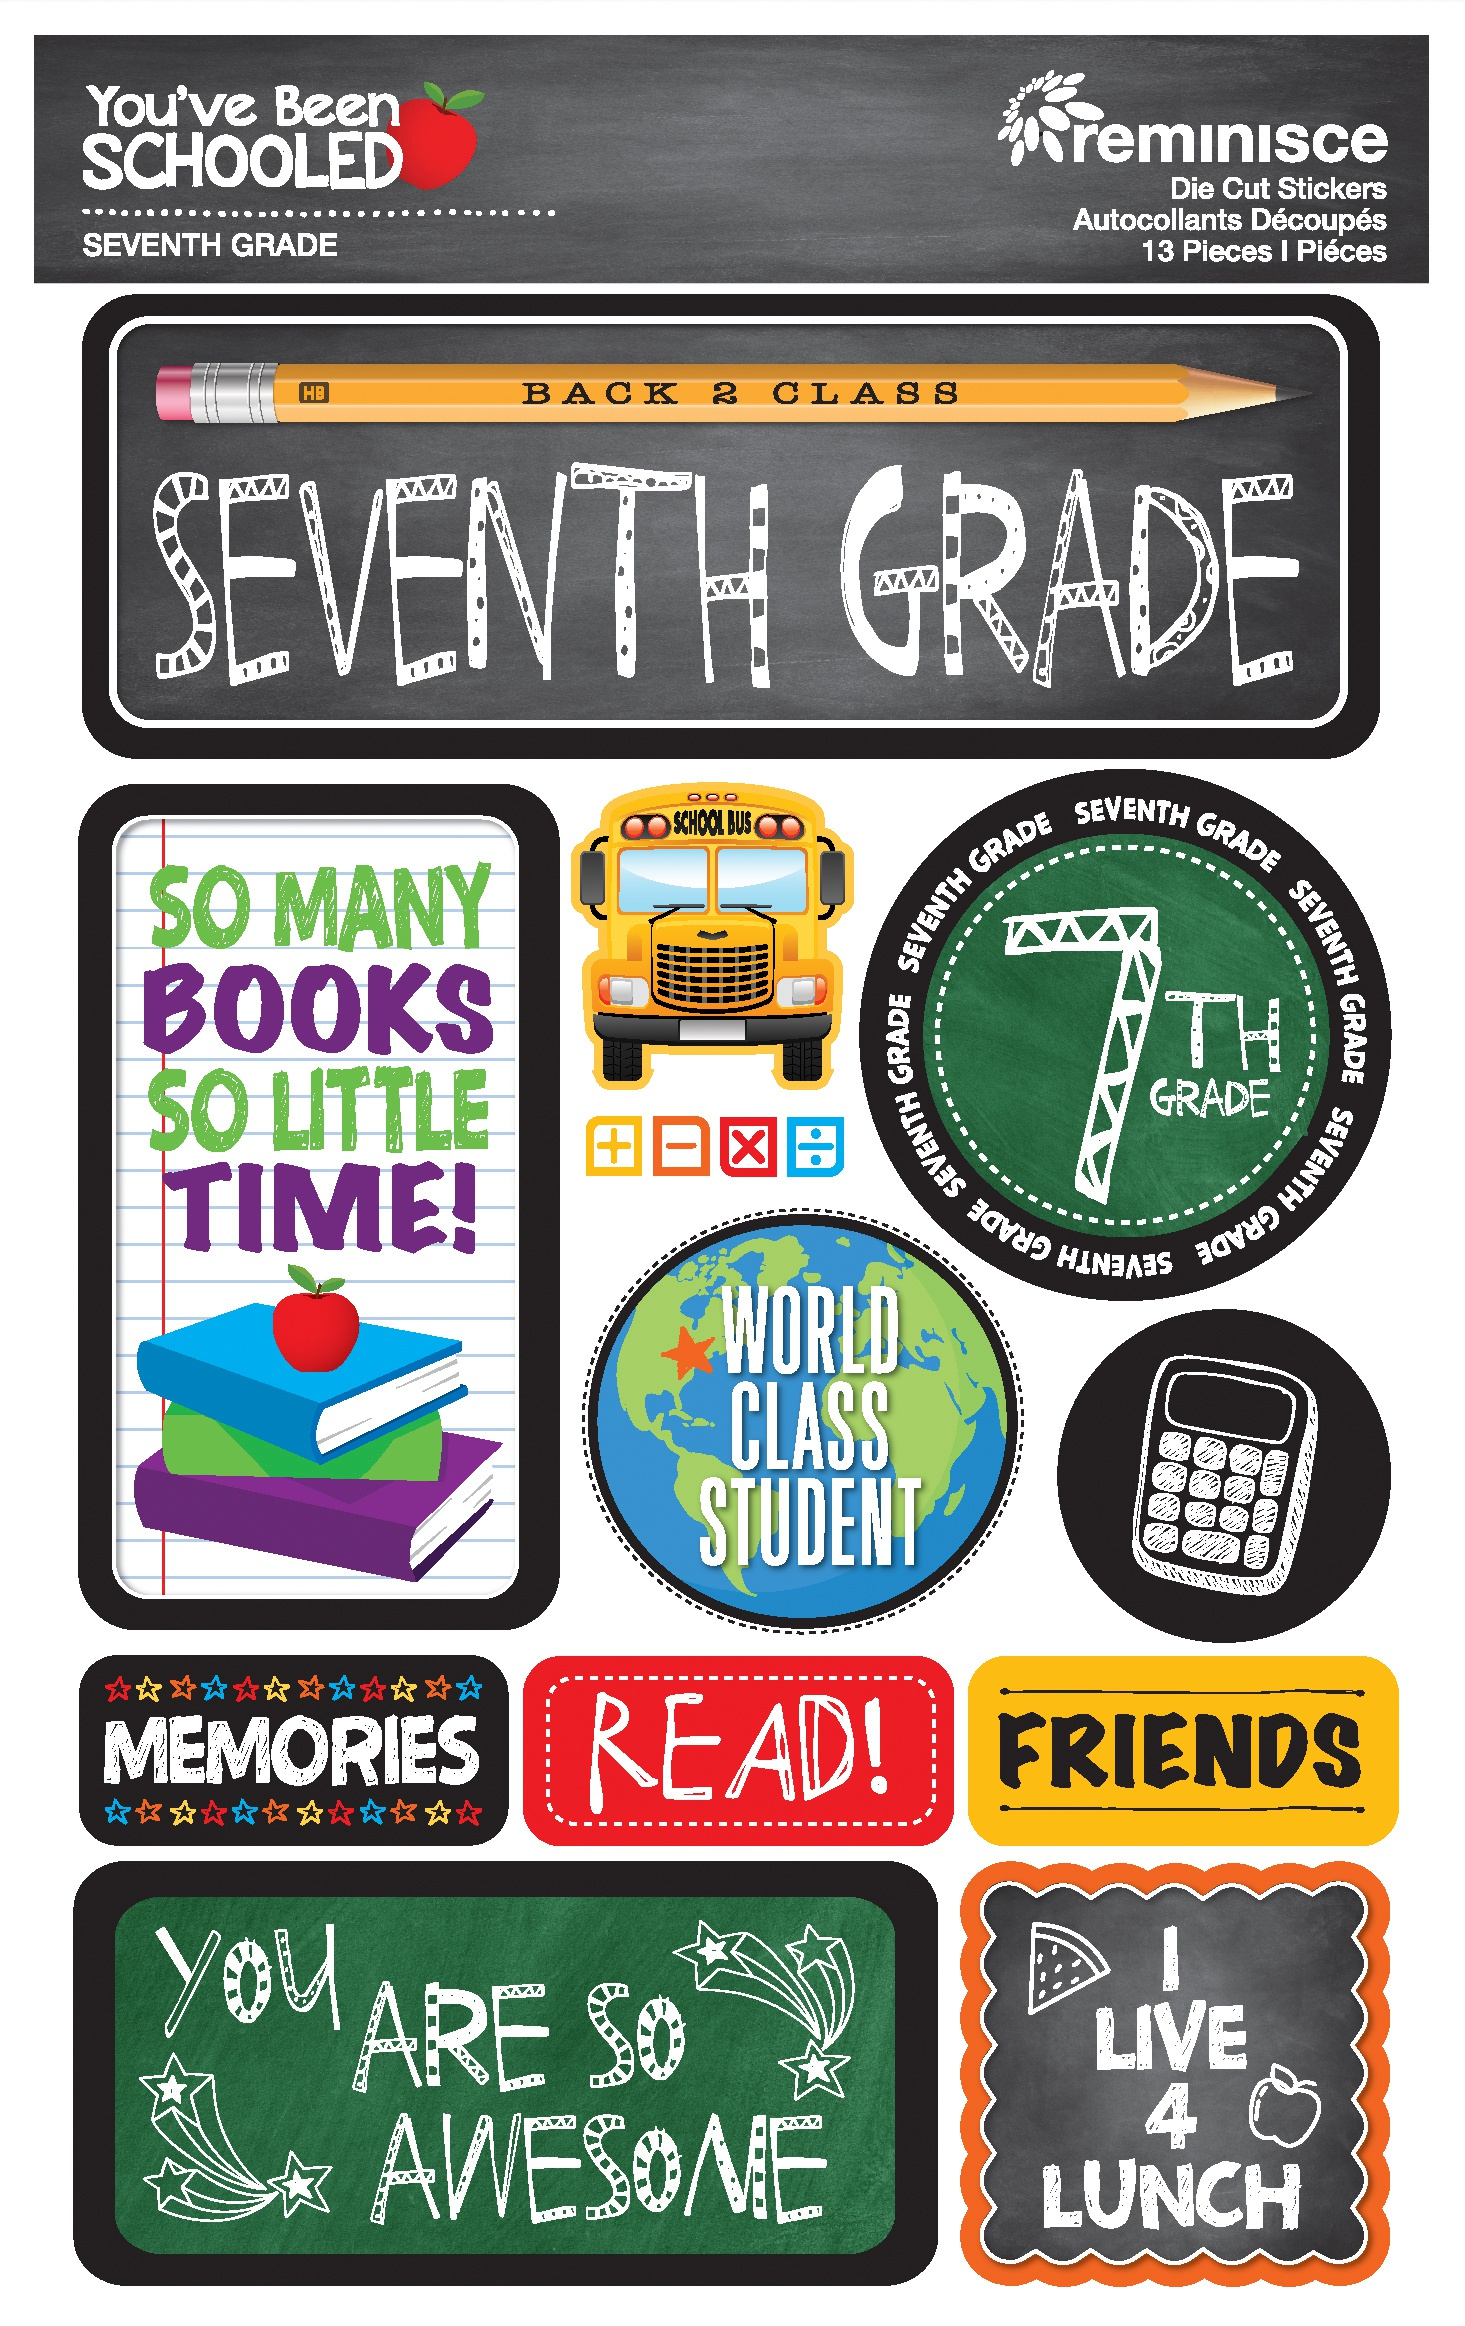 Reminisce You've Been Schooled -  7th Grade 3D Dimensional Stickers